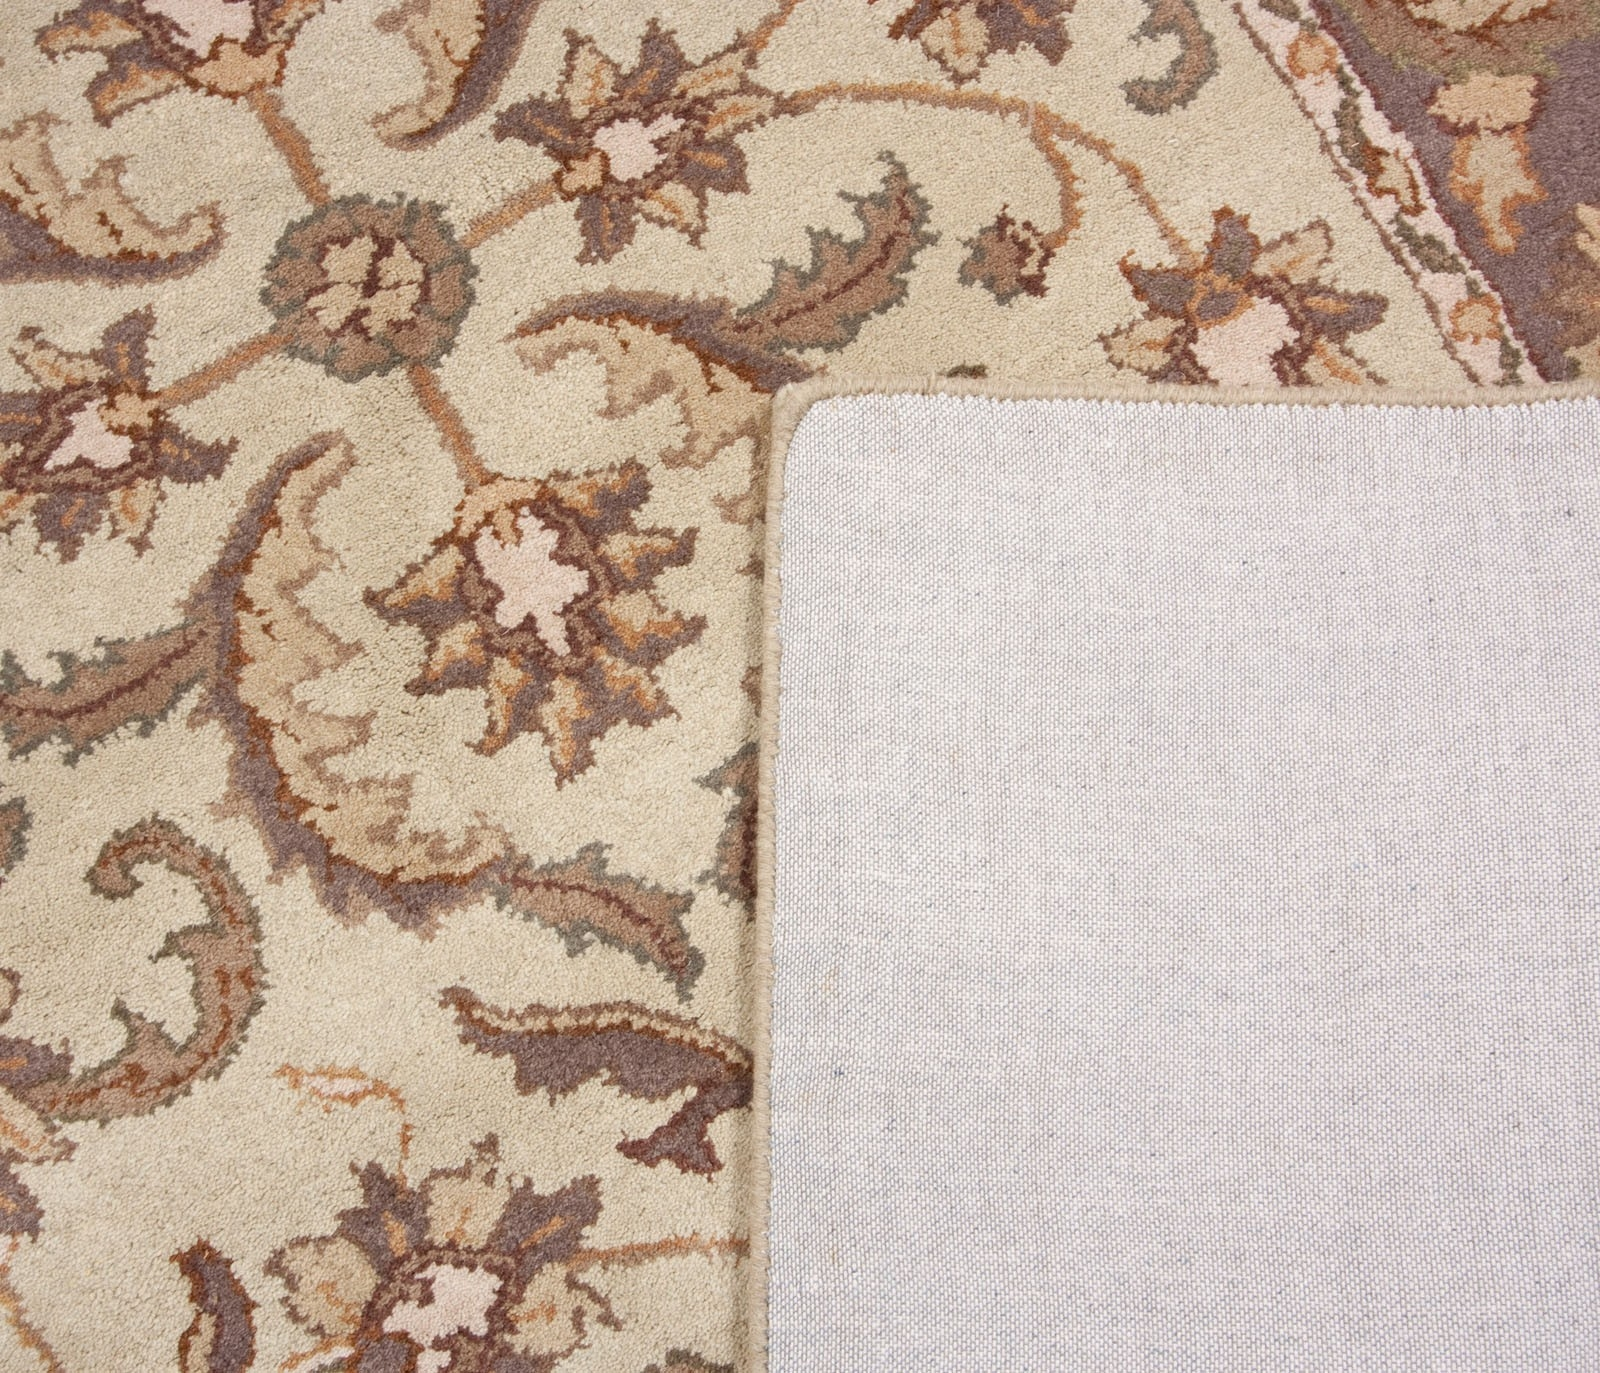 Tan Beige Brown Purple Gold Hand Tufted Wool Area Rug Carpet 5×8 With Regard To Hand Tufted Wool Area Rugs (#12 of 15)